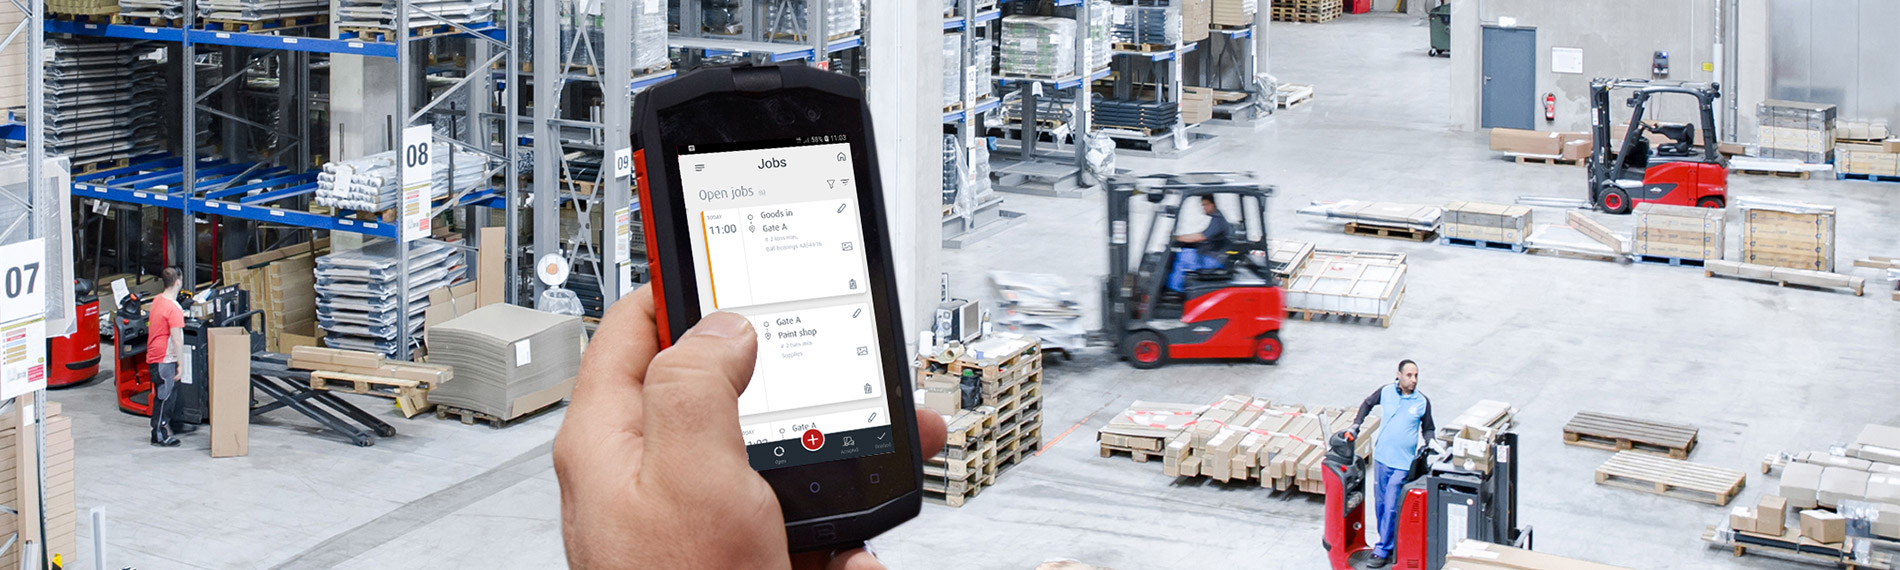 truck call app lagerhalle smartphone